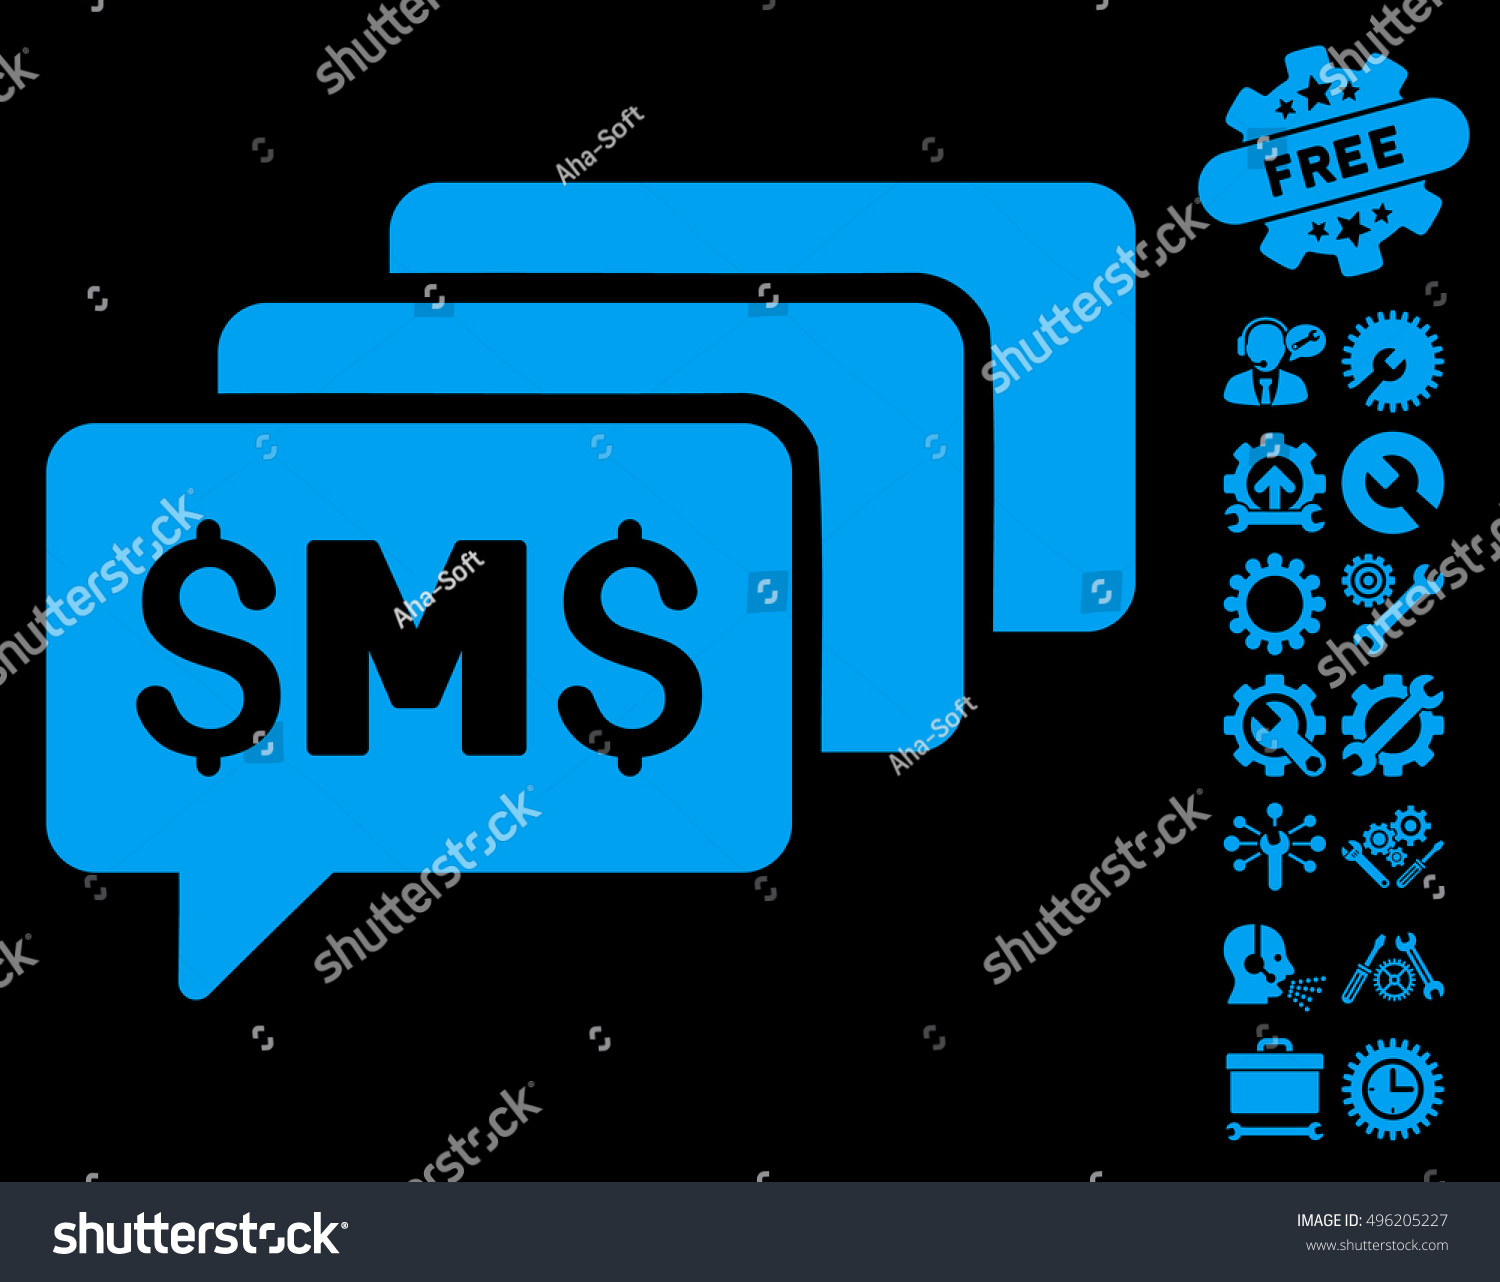 Sms messages icon bonus tools icon stock vector 496205227 sms messages icon with bonus tools icon set vector illustration style is flat iconic symbols biocorpaavc Images